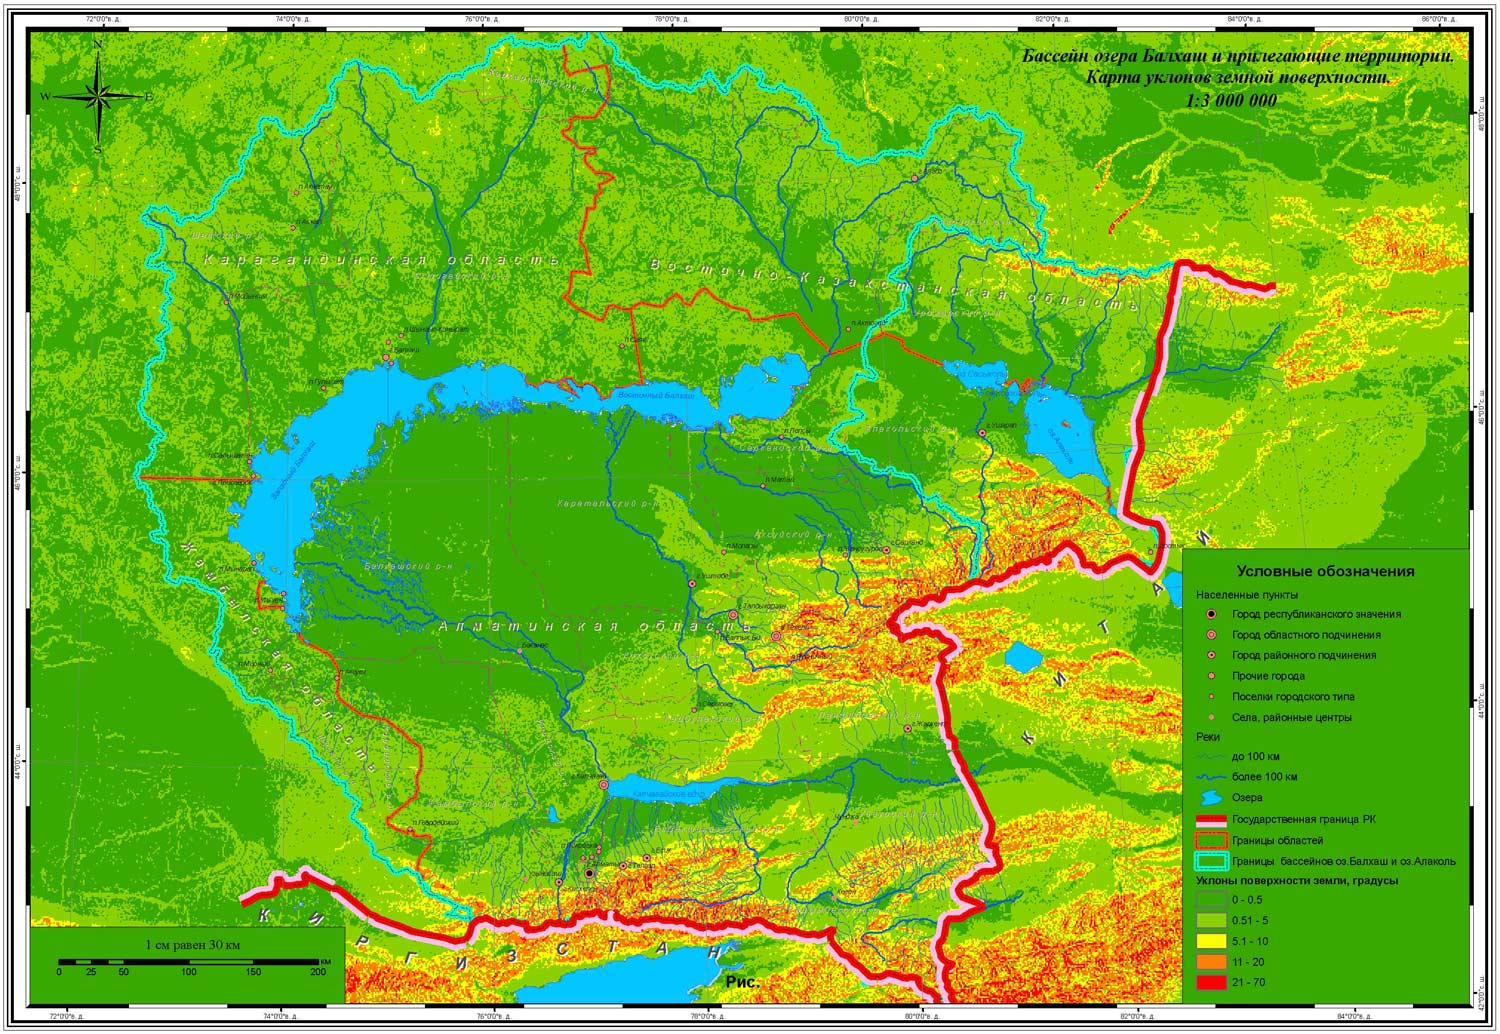 water resources of kazakhstan Lake balkhash is one of the largest lakes in asia and 15th largest in the world it  is located in central asia in southeastern kazakhstan and belongs to an  the  western part is fresh water, while the eastern half is saline the eastern part is on  average  unep global resource information database retrieved 2009-01- 29.